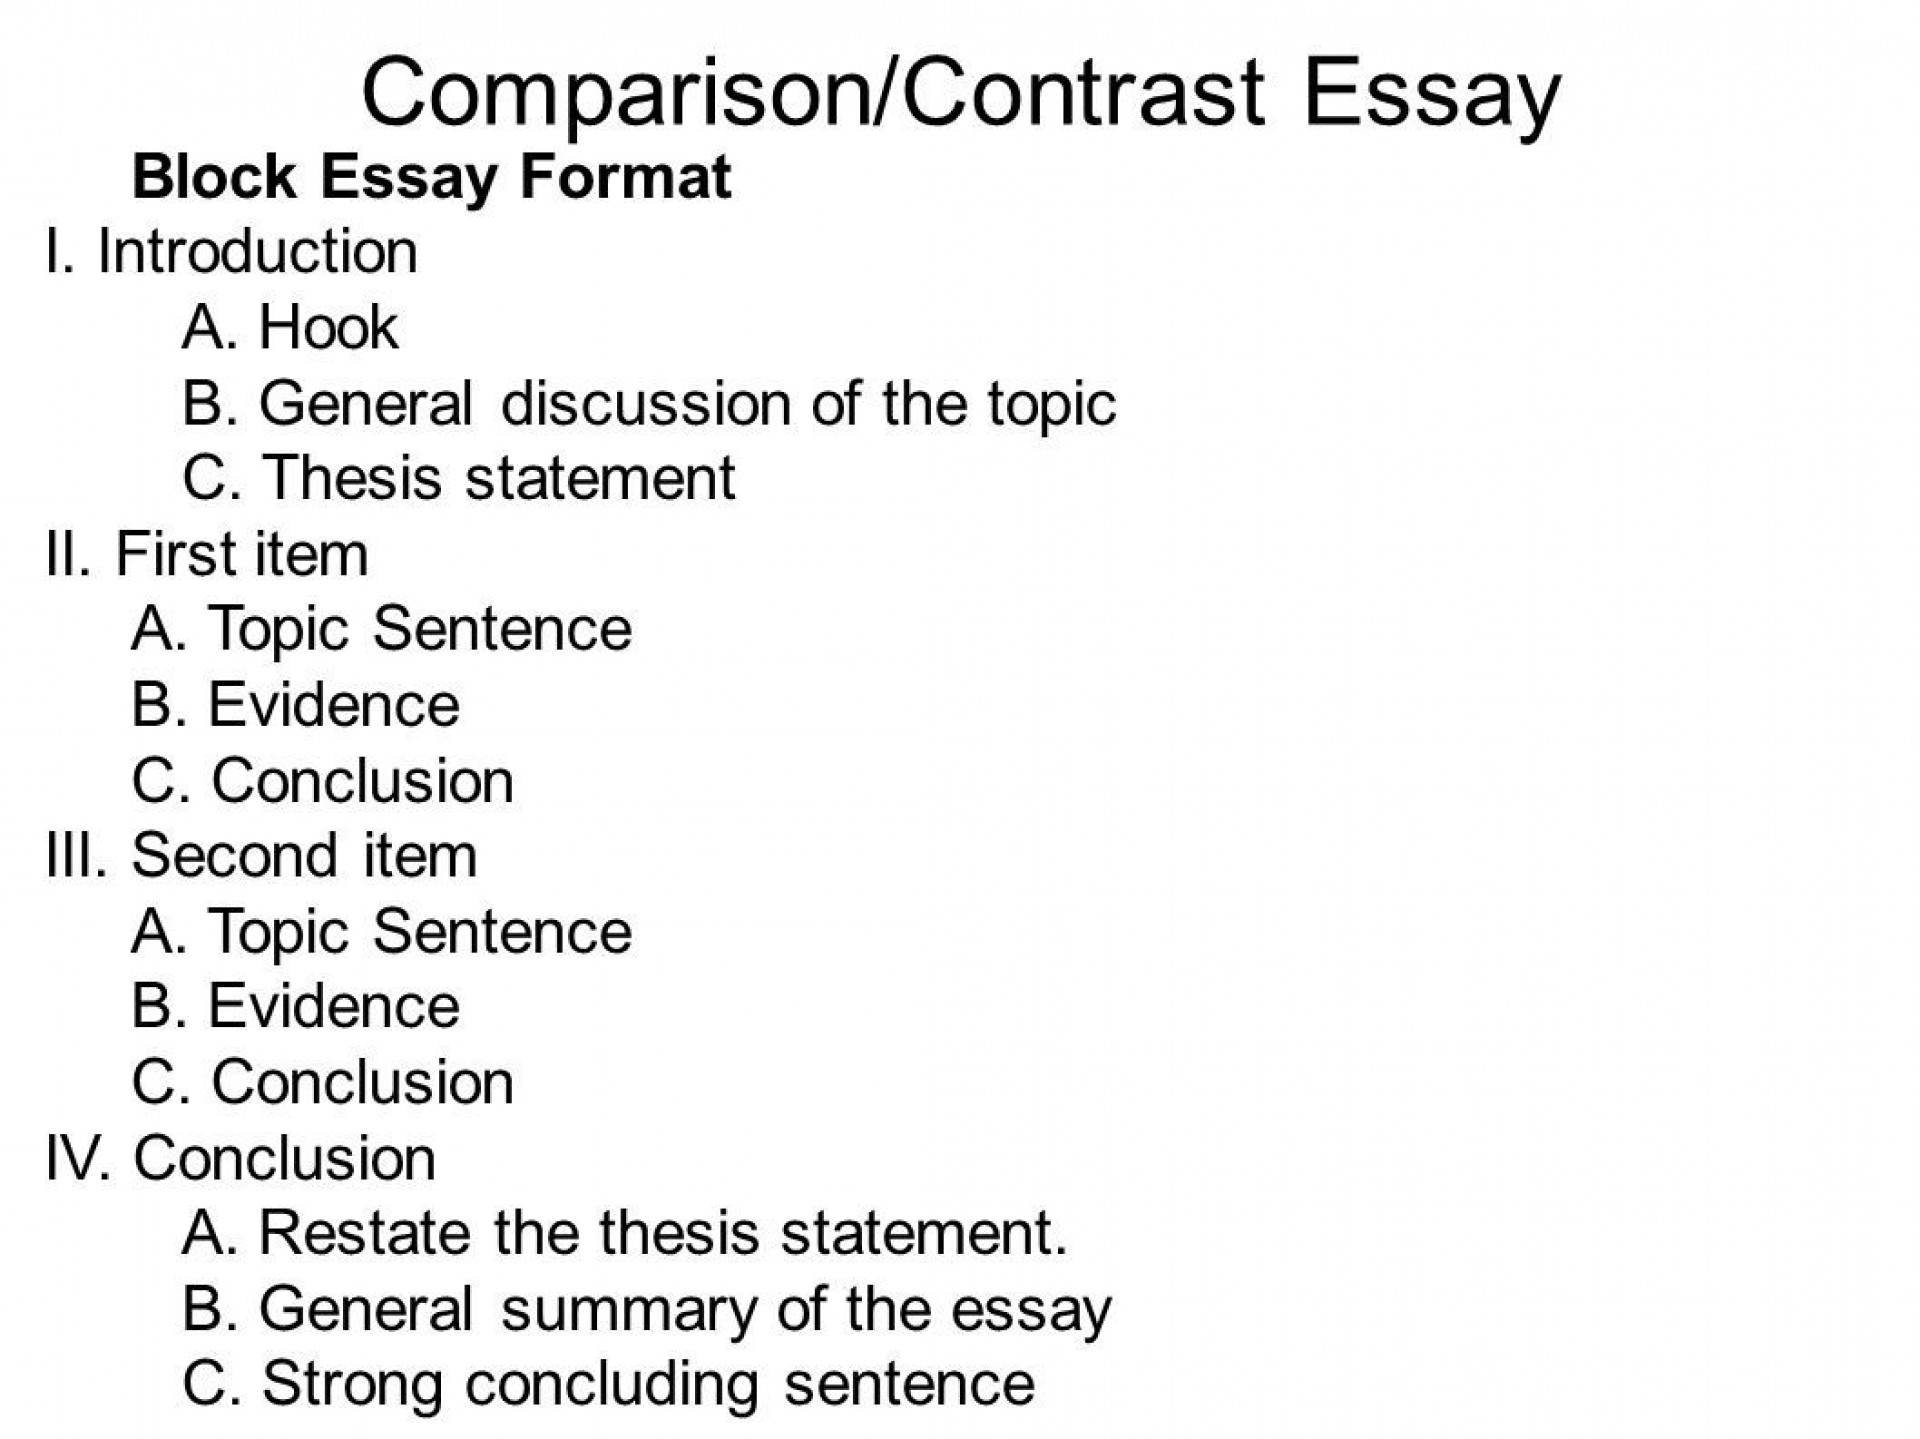 008 Thesis Statement For Compare And Contrast Essay Example Shocking Generator How To Make A 1920